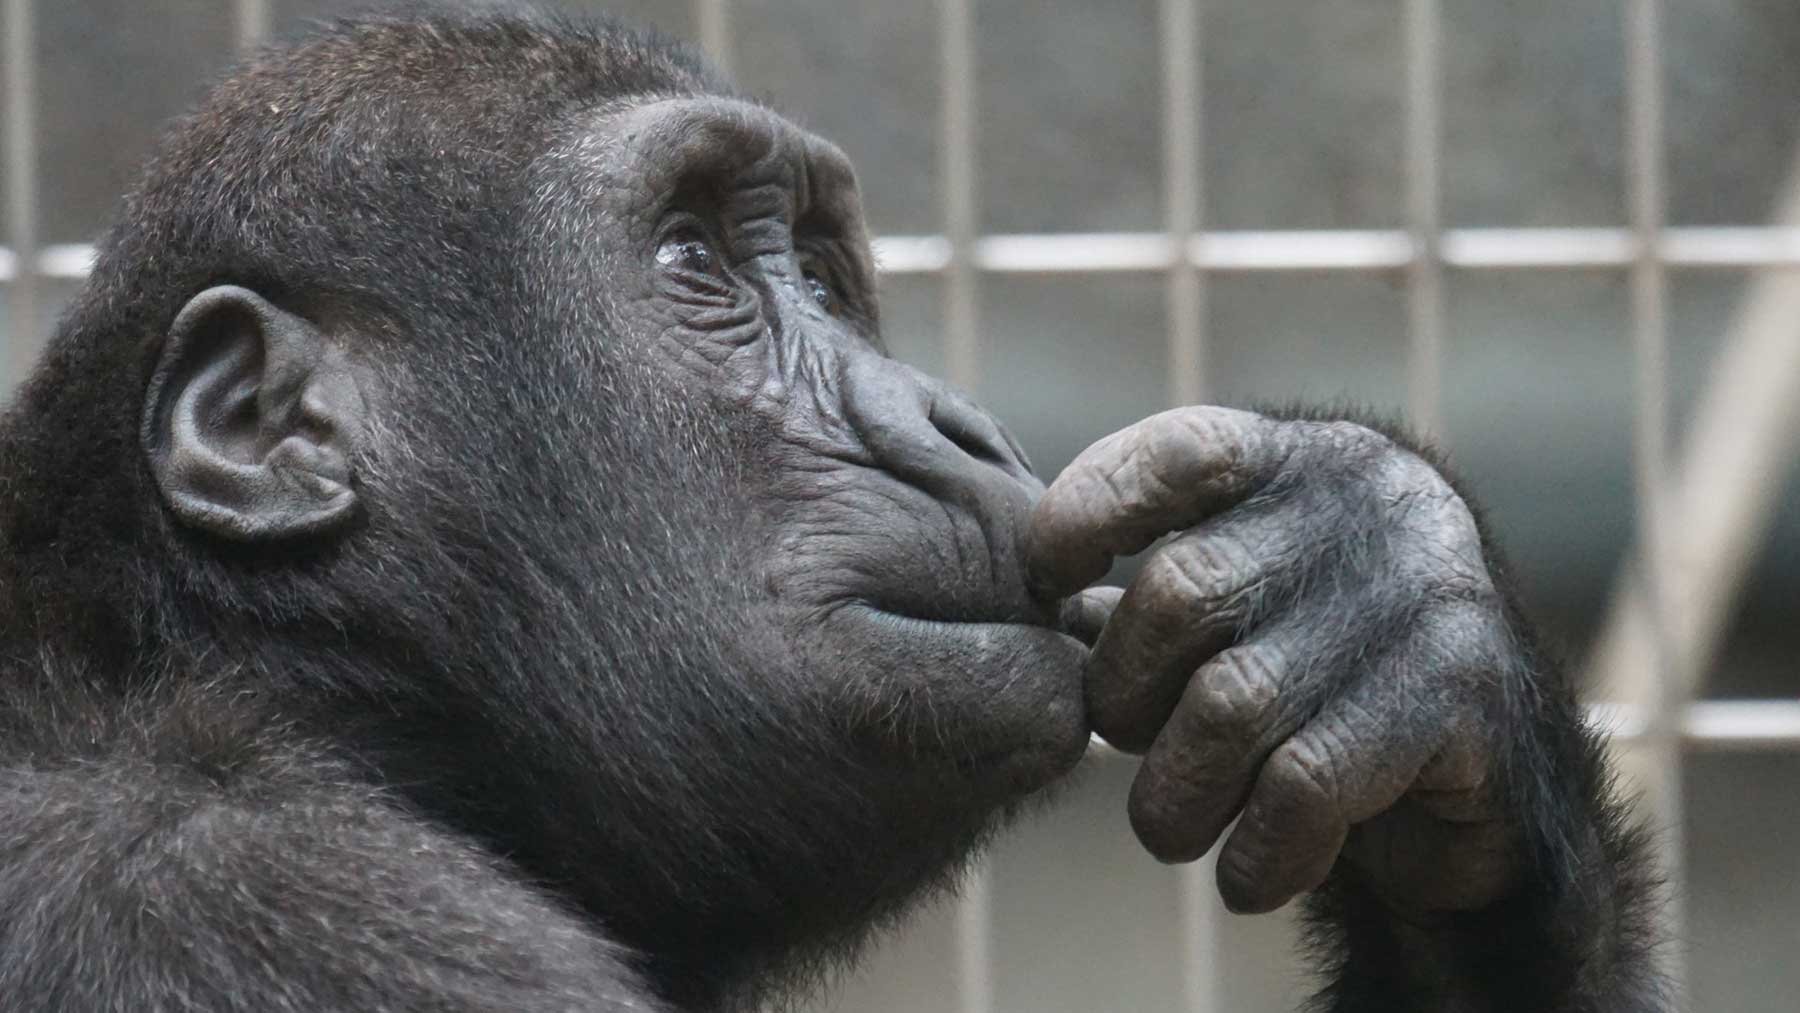 a chimp in a cage with fingers to its mouth, looking doubtful and uncertain